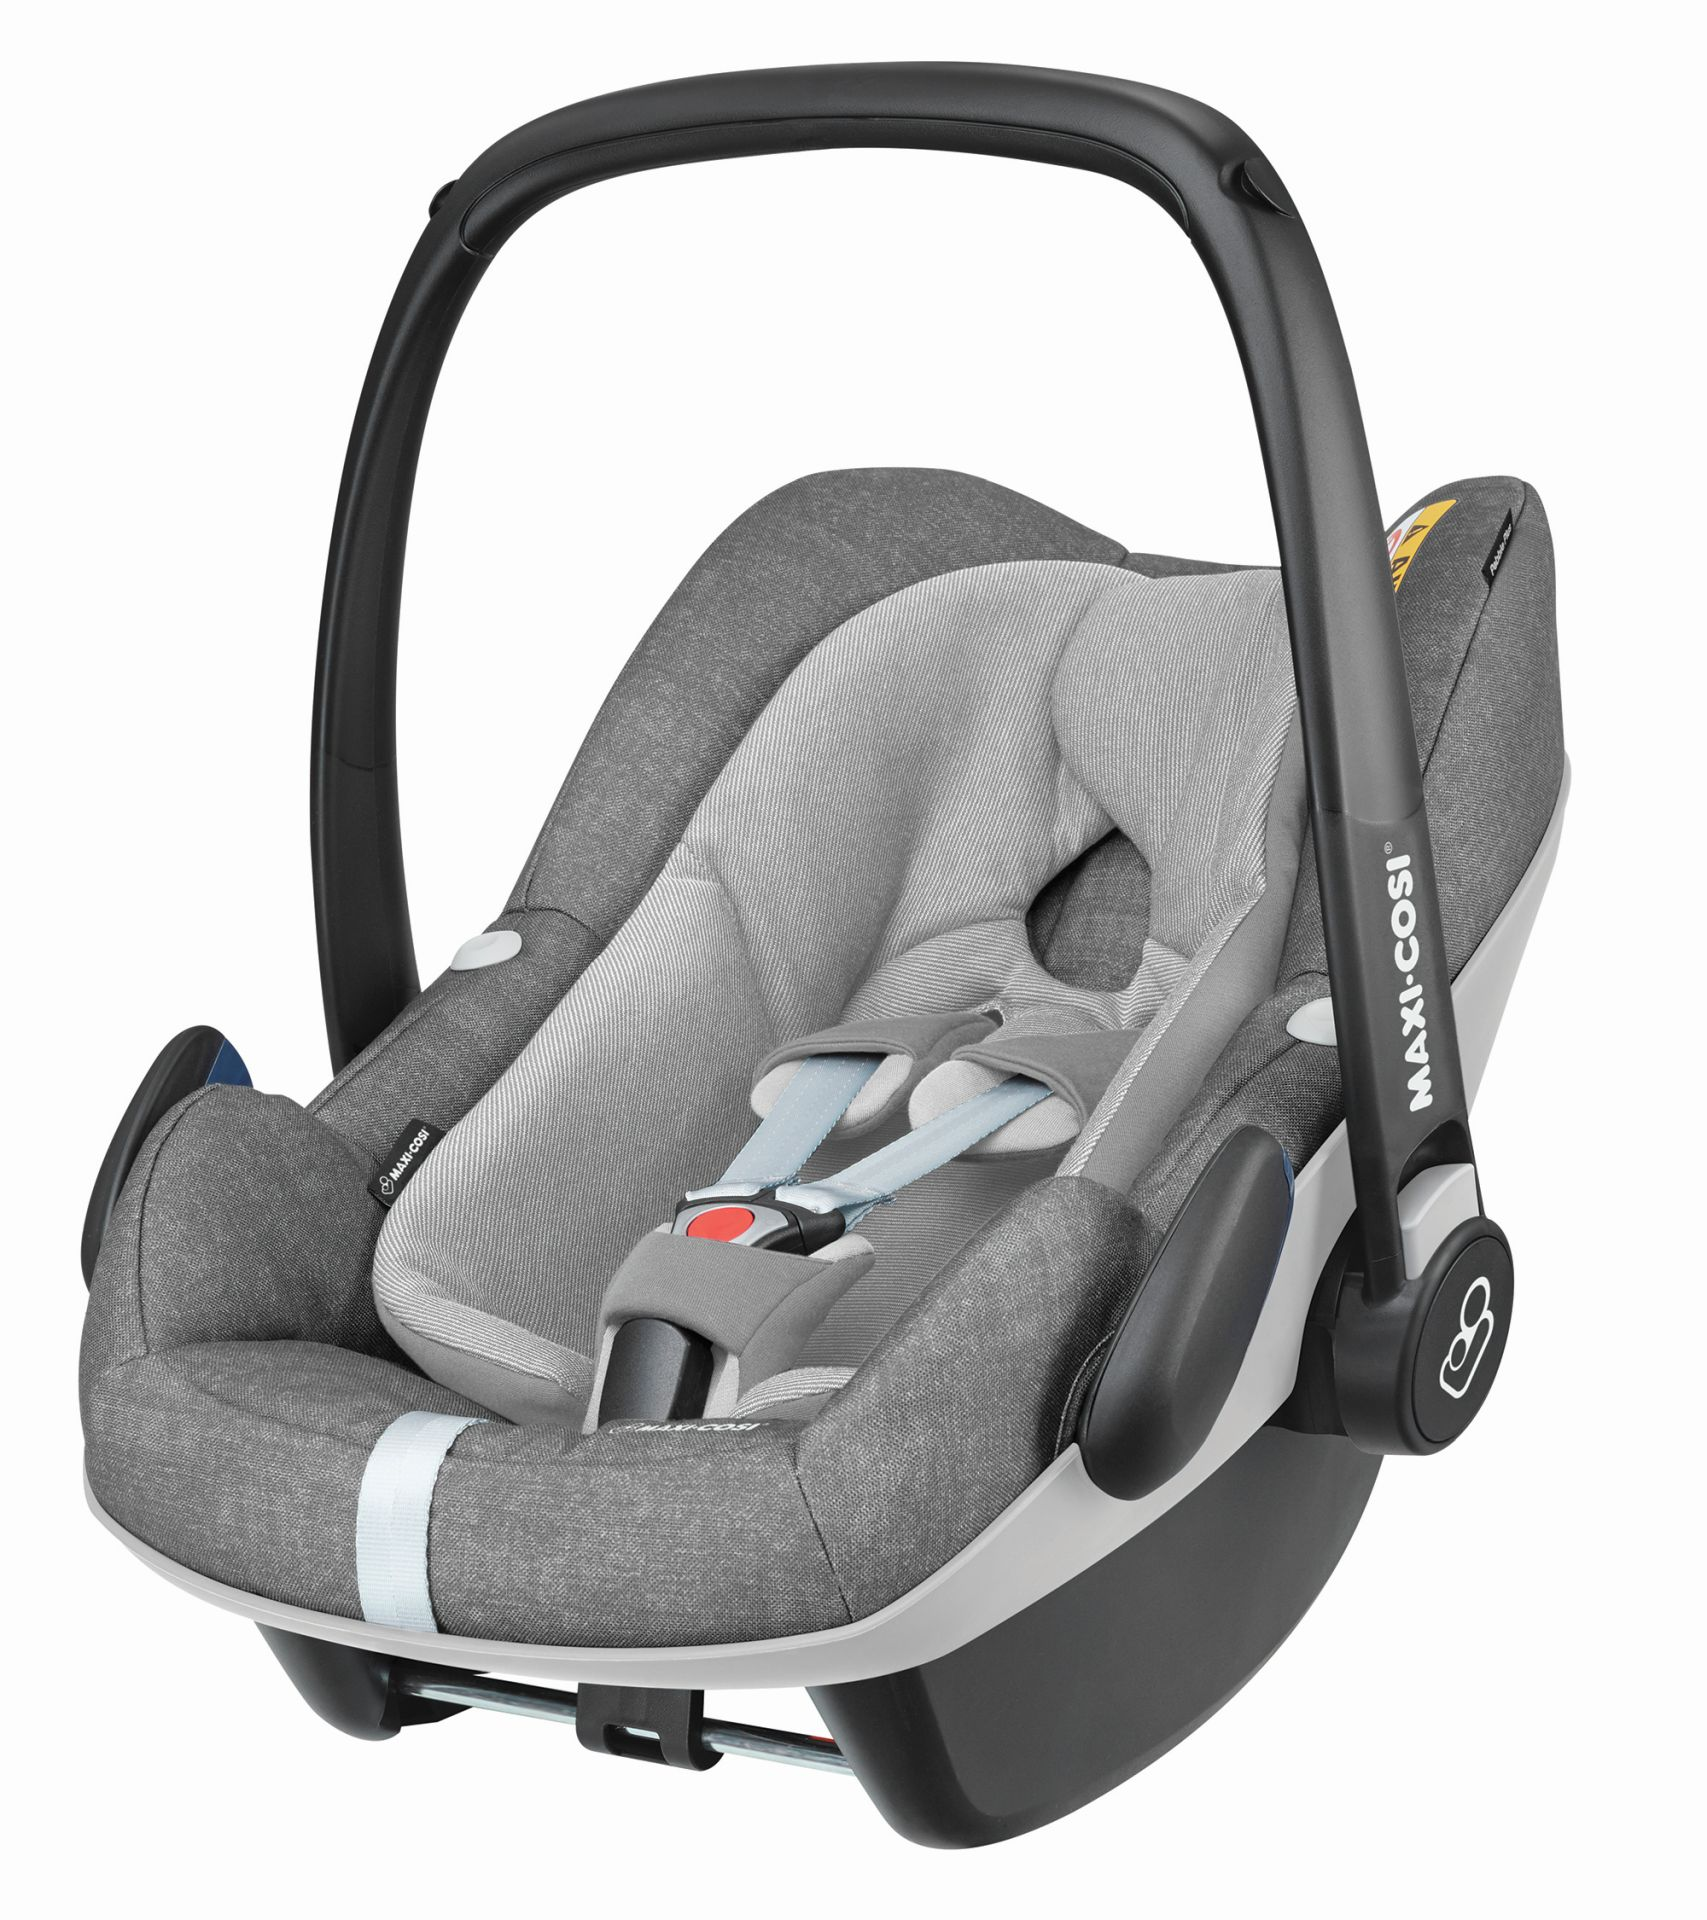 maxi cosi infant car seat pebble plus 2018 nomad grey buy at kidsroom car seats. Black Bedroom Furniture Sets. Home Design Ideas